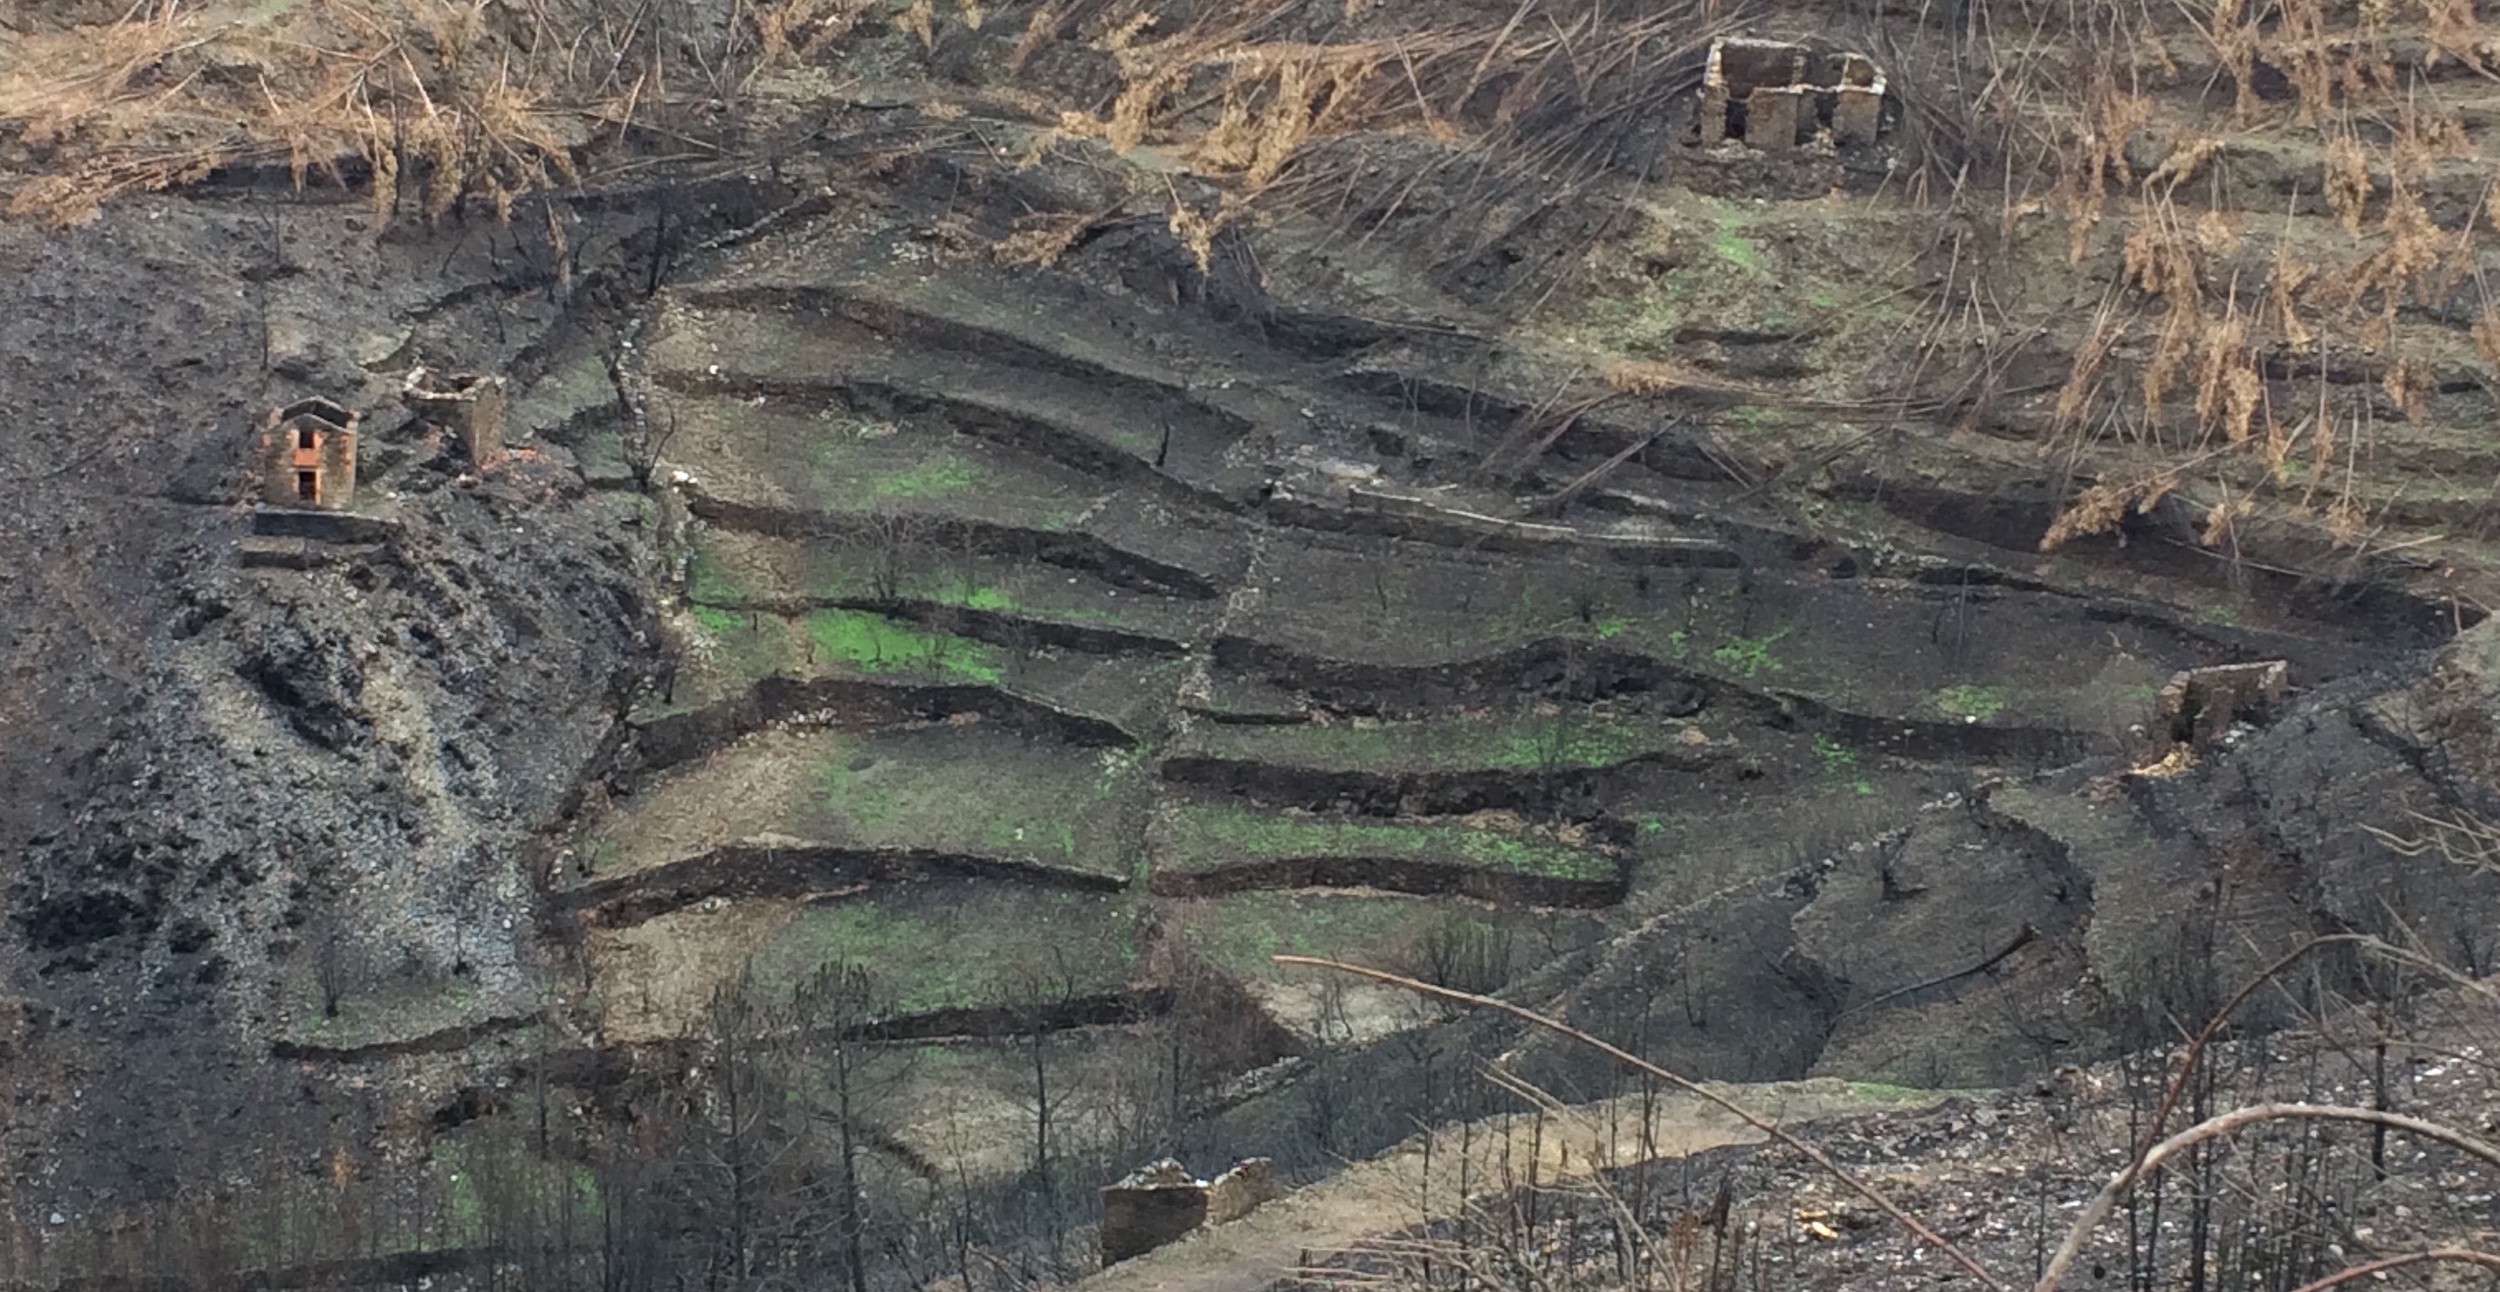 Catastrophic ecosystem degradation featuring wildfire damage and soil erosion. Photo by author.